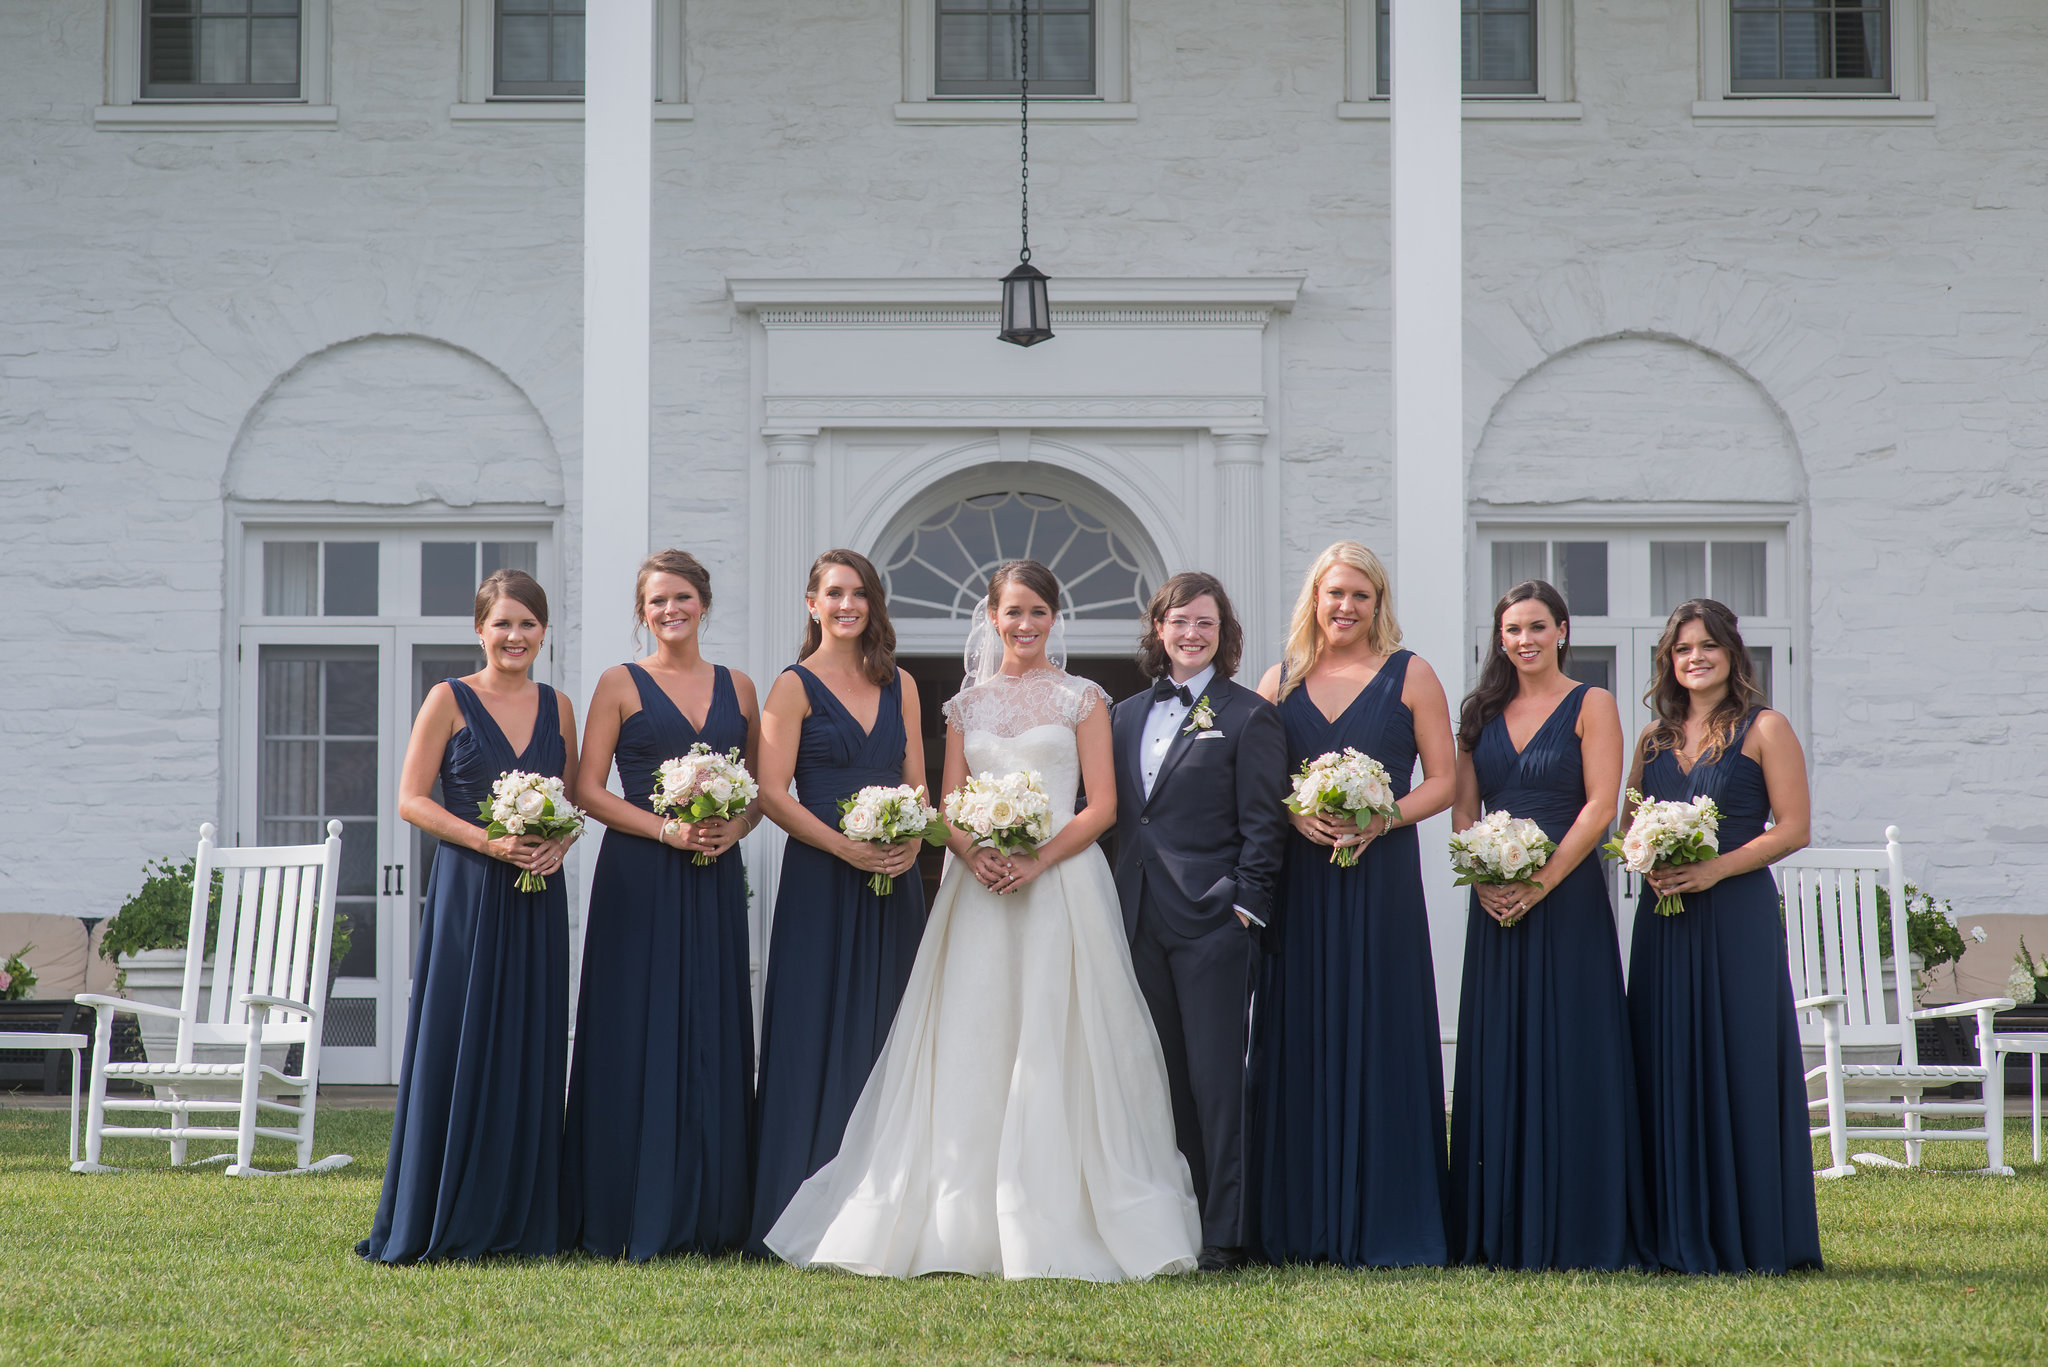 North Carolina Wedding, Events by Reagan, Destination Wedding Planner, Bridal party, Bridesmaids, Navy bridesmaid dress